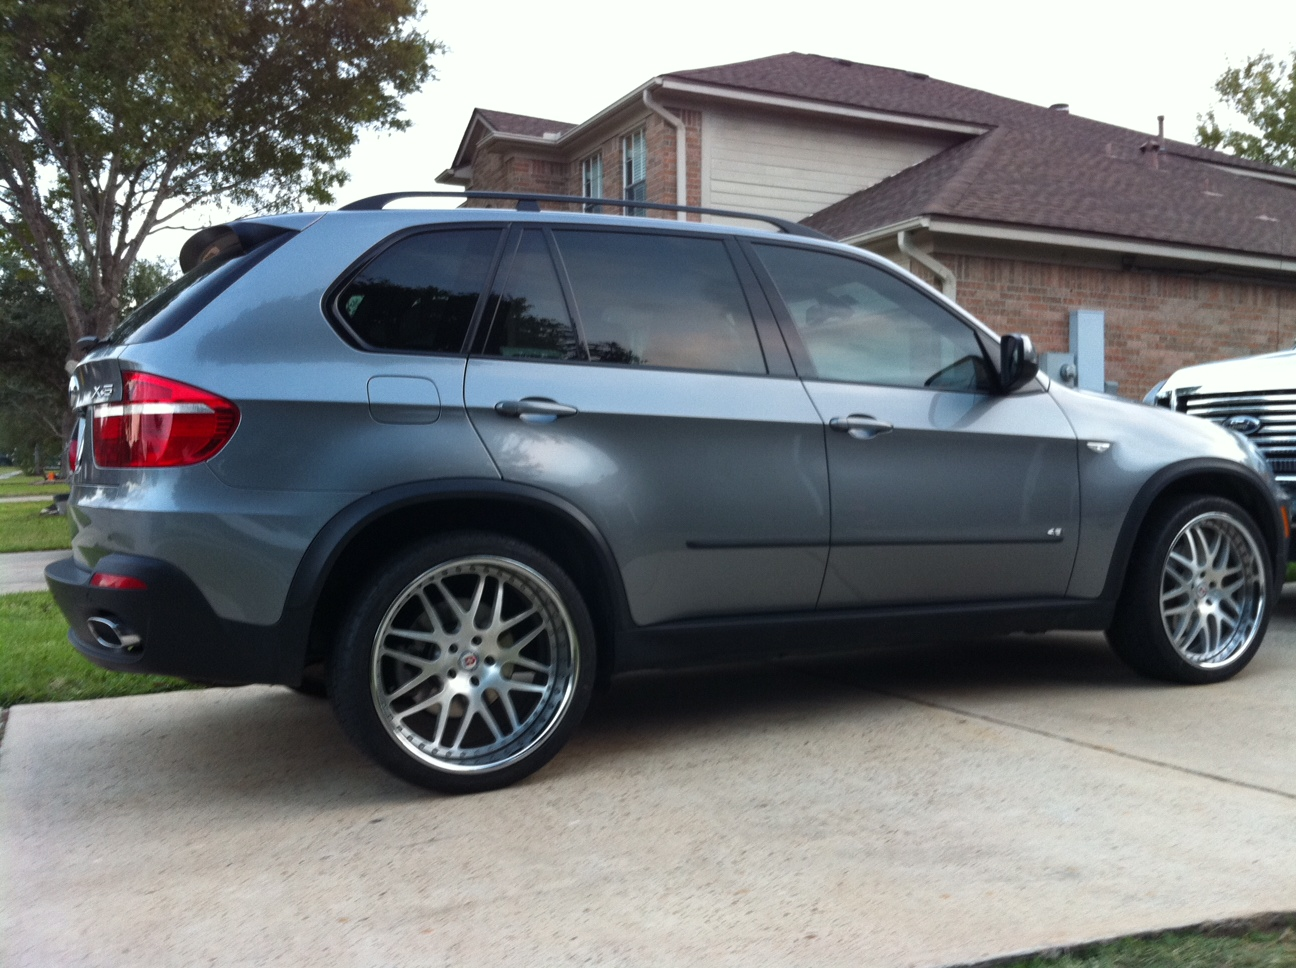 Hre 640r Wheels And Tires Like New Xoutpost Com